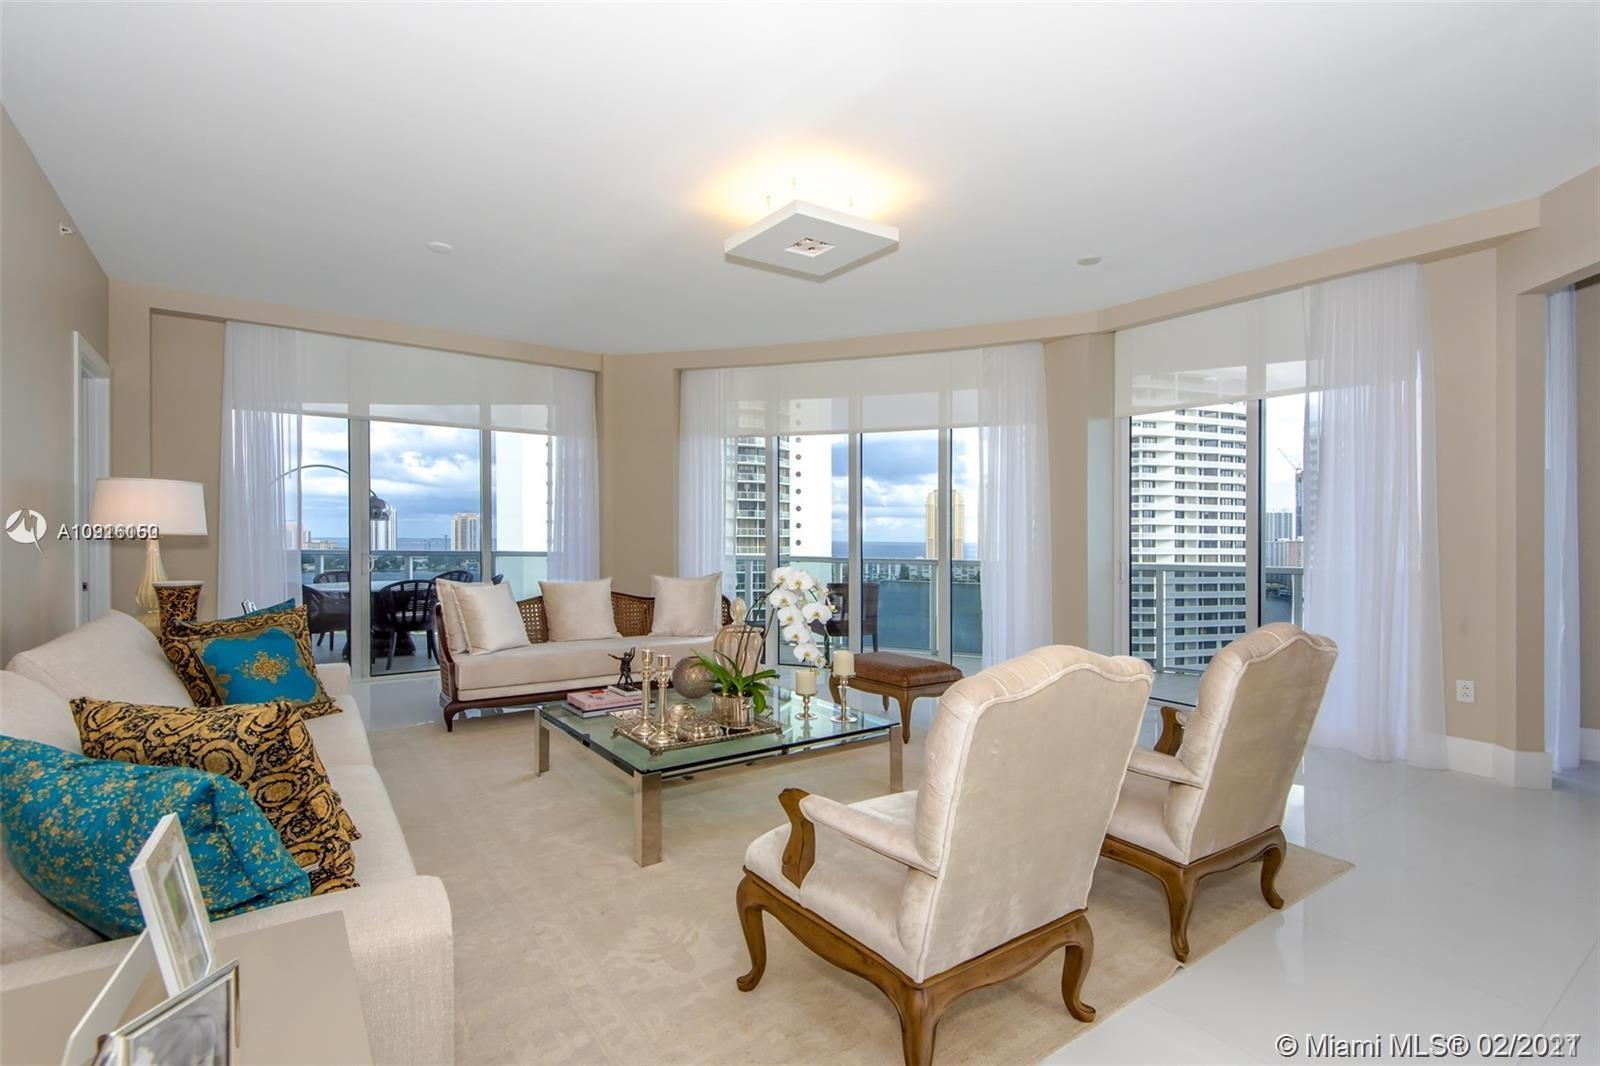 Spectacular 3 bedrooms and 3.5 baths overlooking the intracoastal and the City skyline, professional